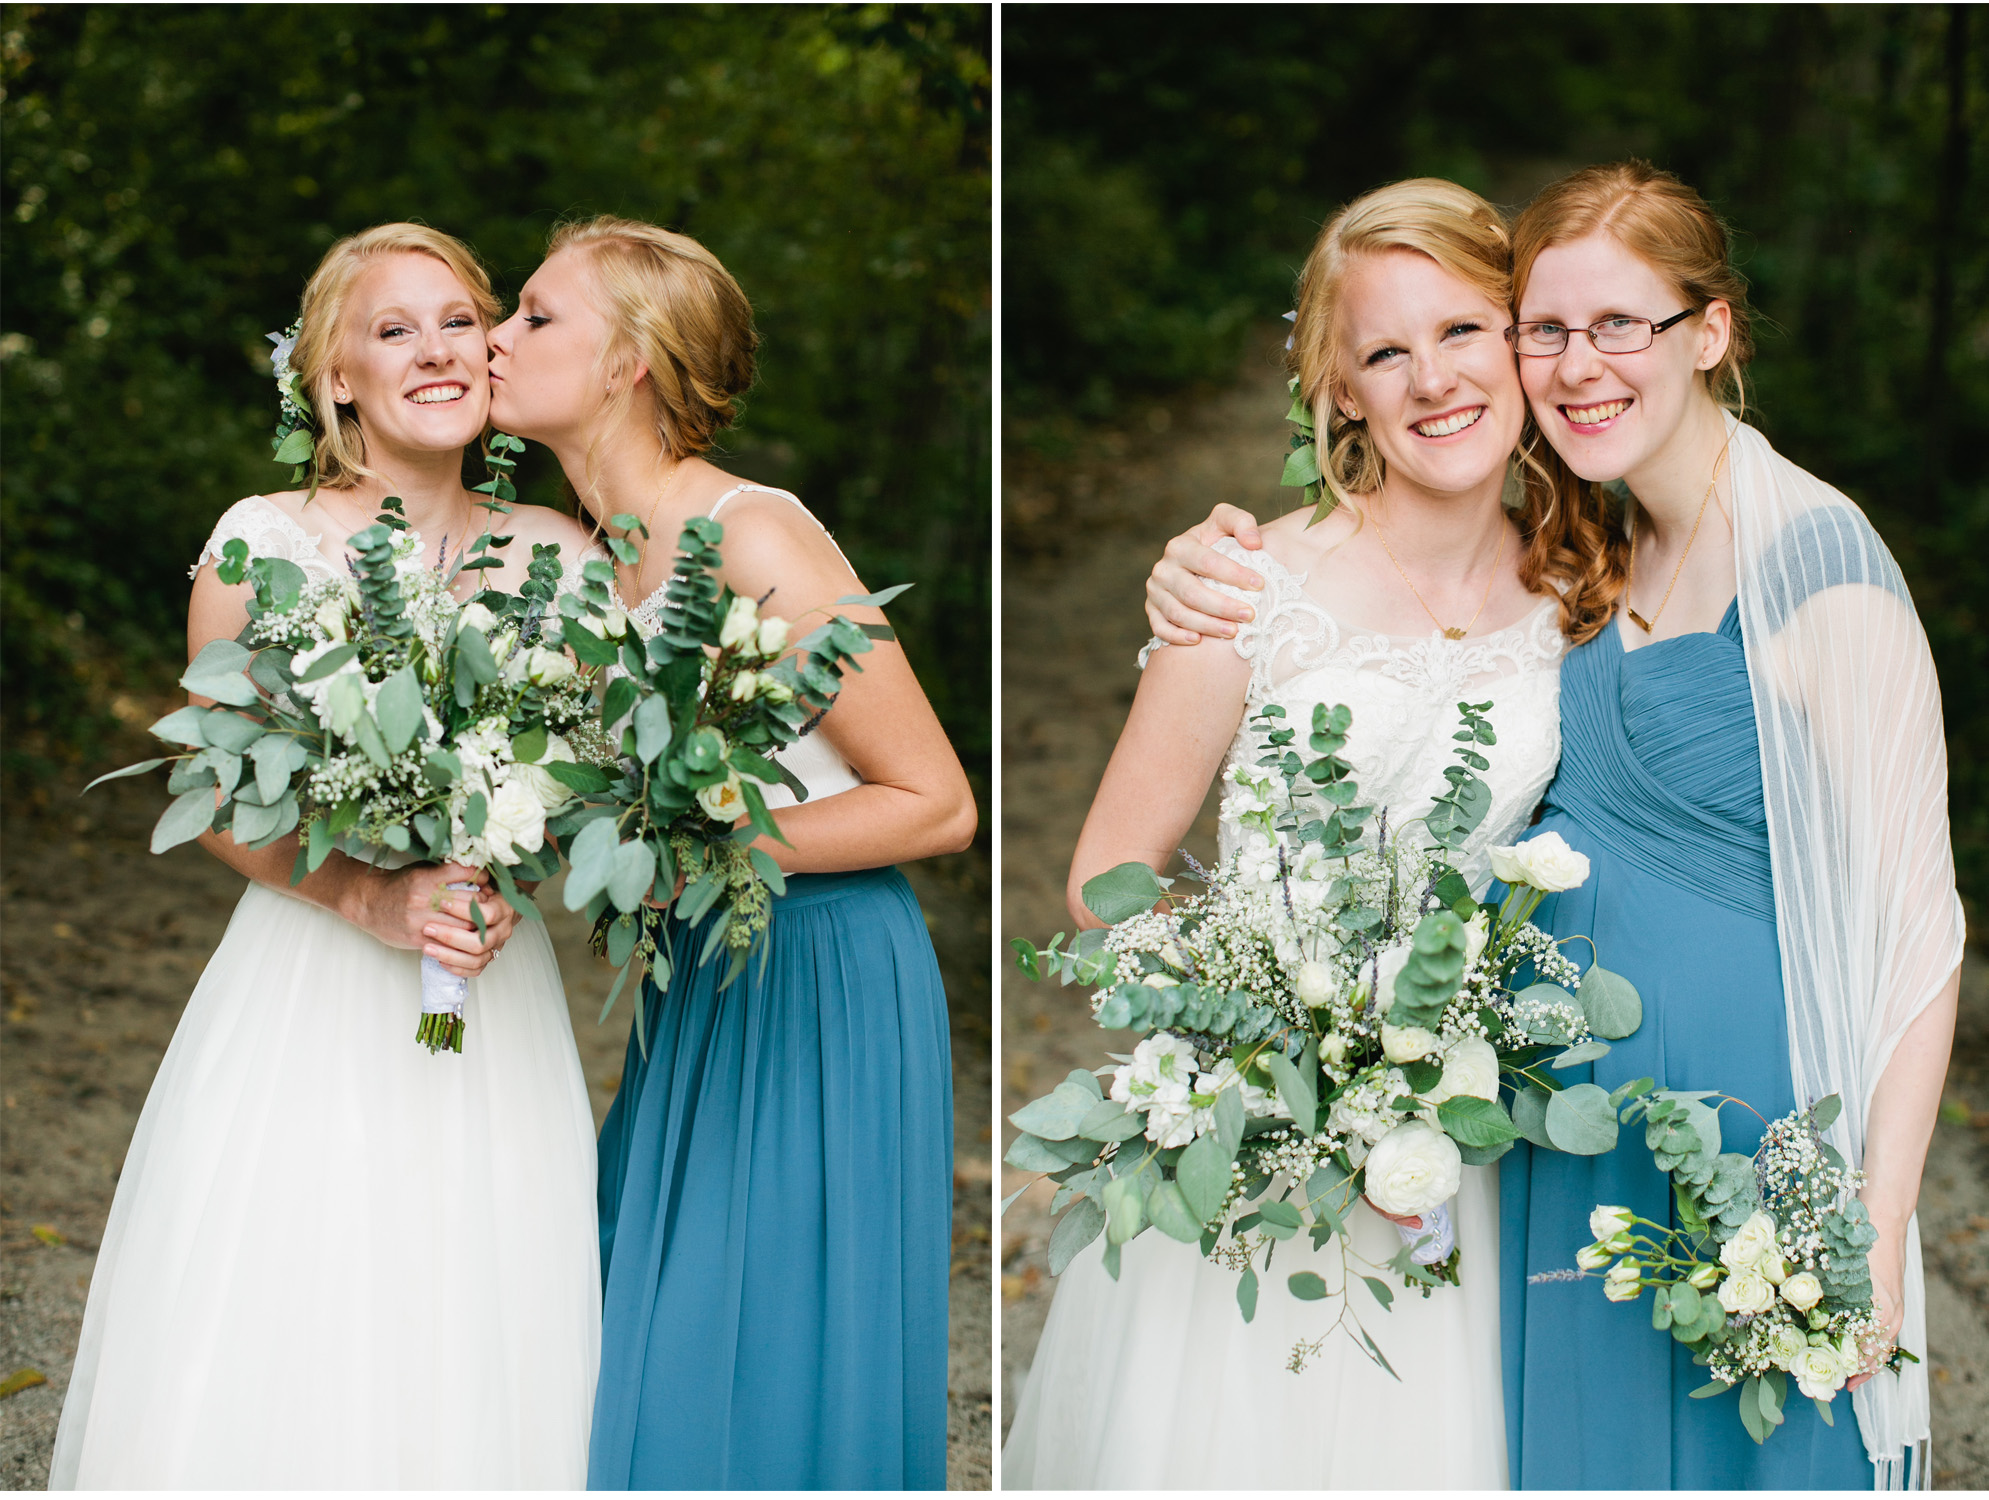 bridal bouquets with eucalyptus leaves and white flowers